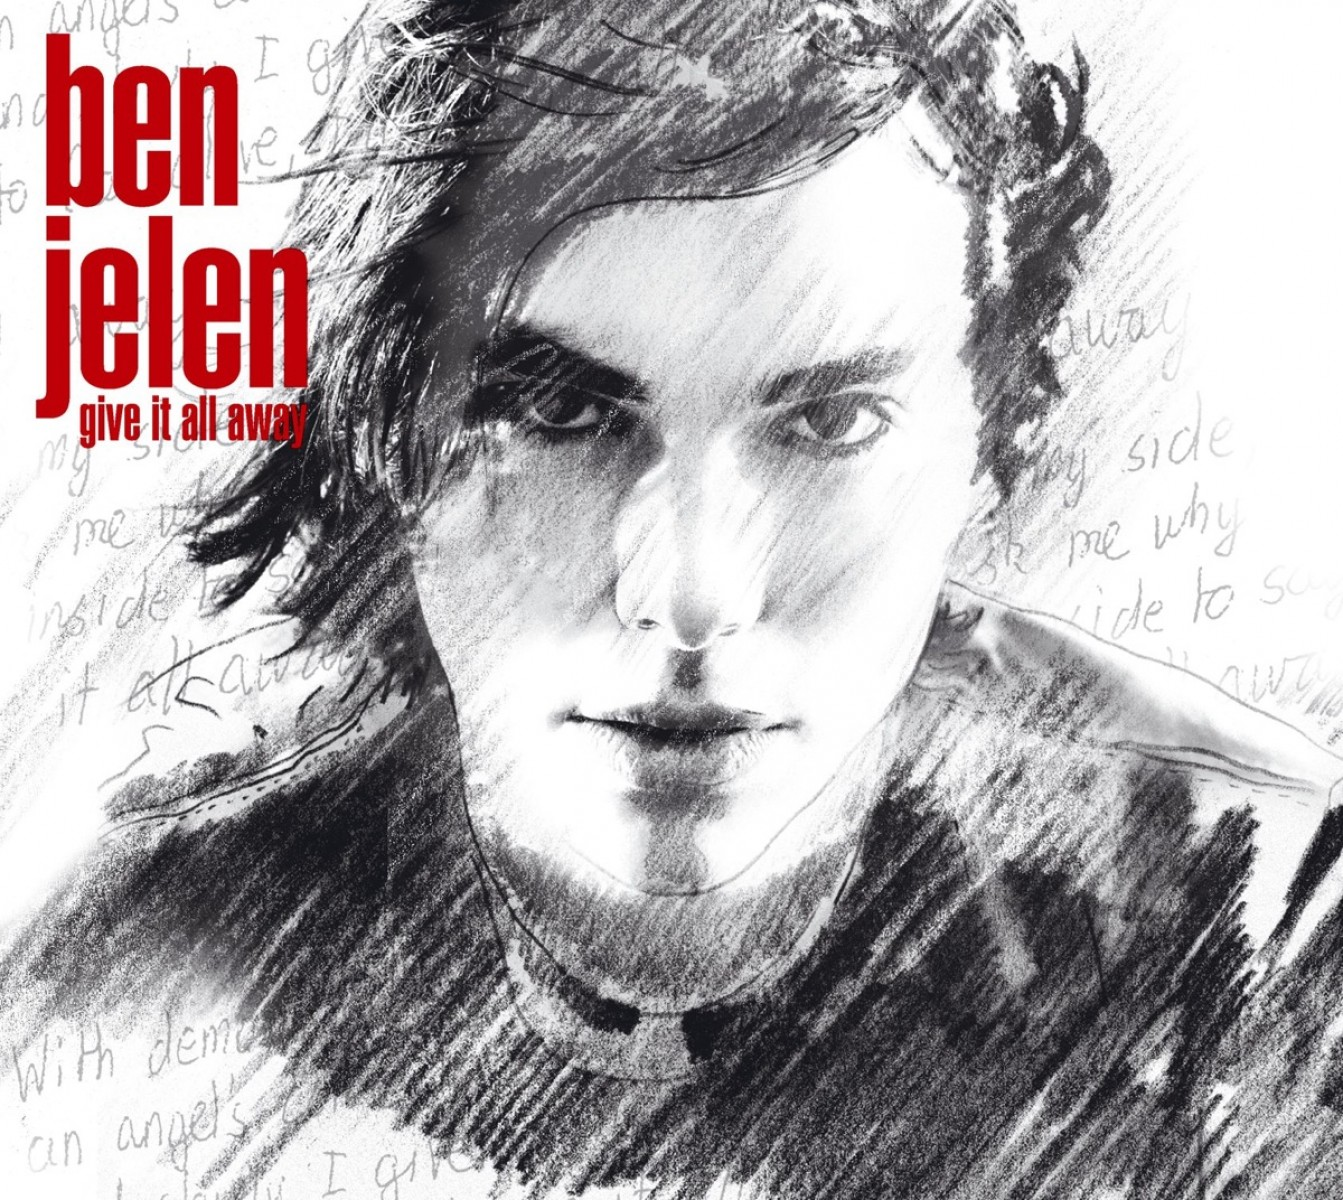 Ben Jelen - Give It Away CD - WBCD 2070